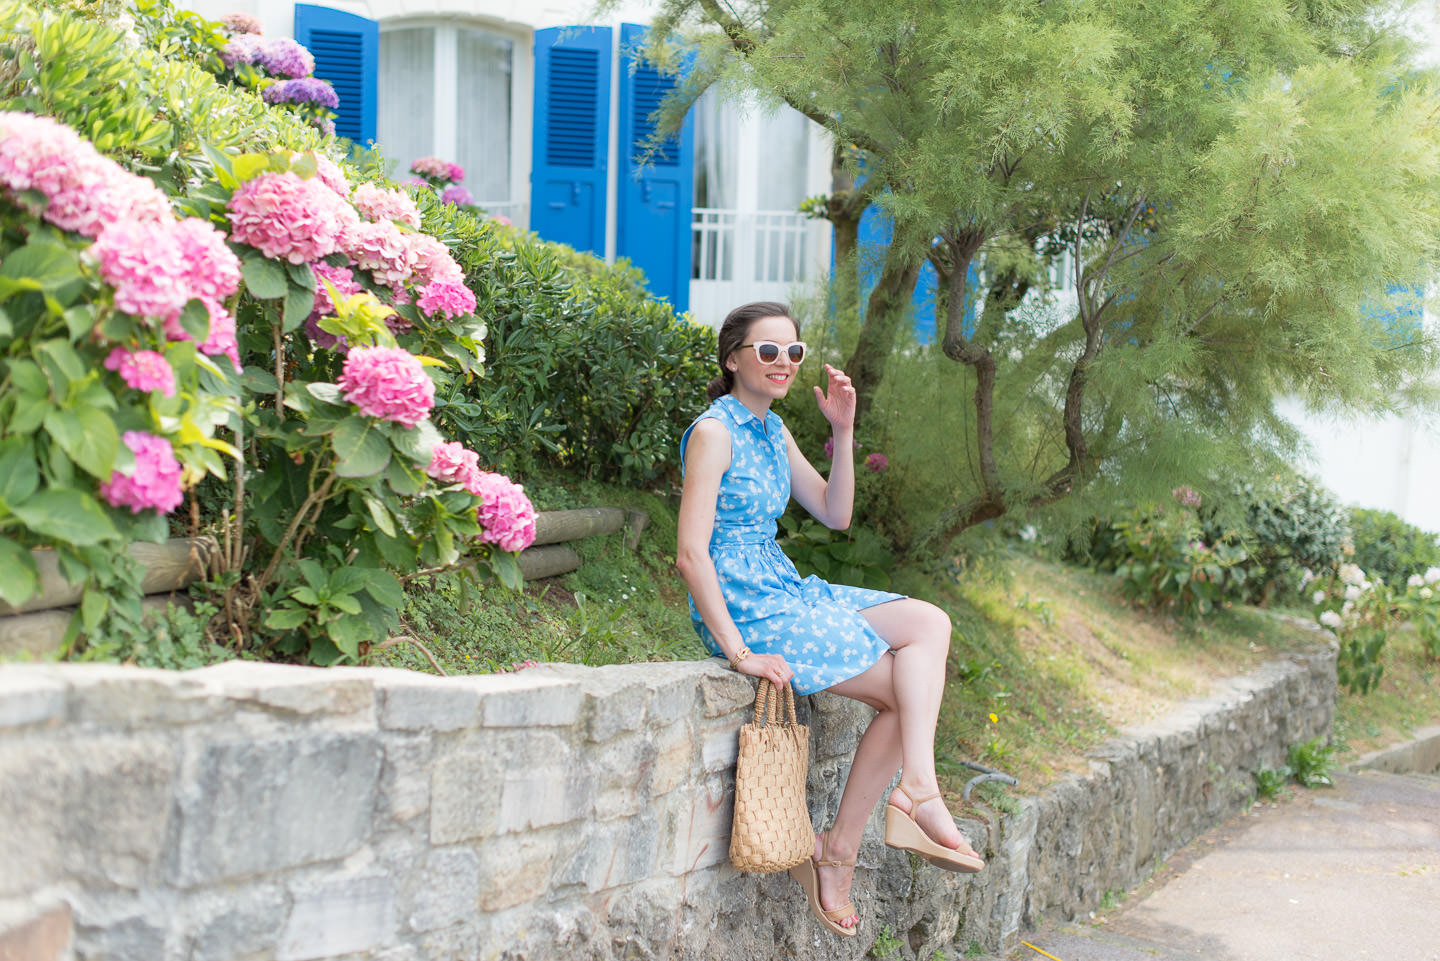 Blog-Mode-And-The-City-Looks-Hortensias-Biarritz